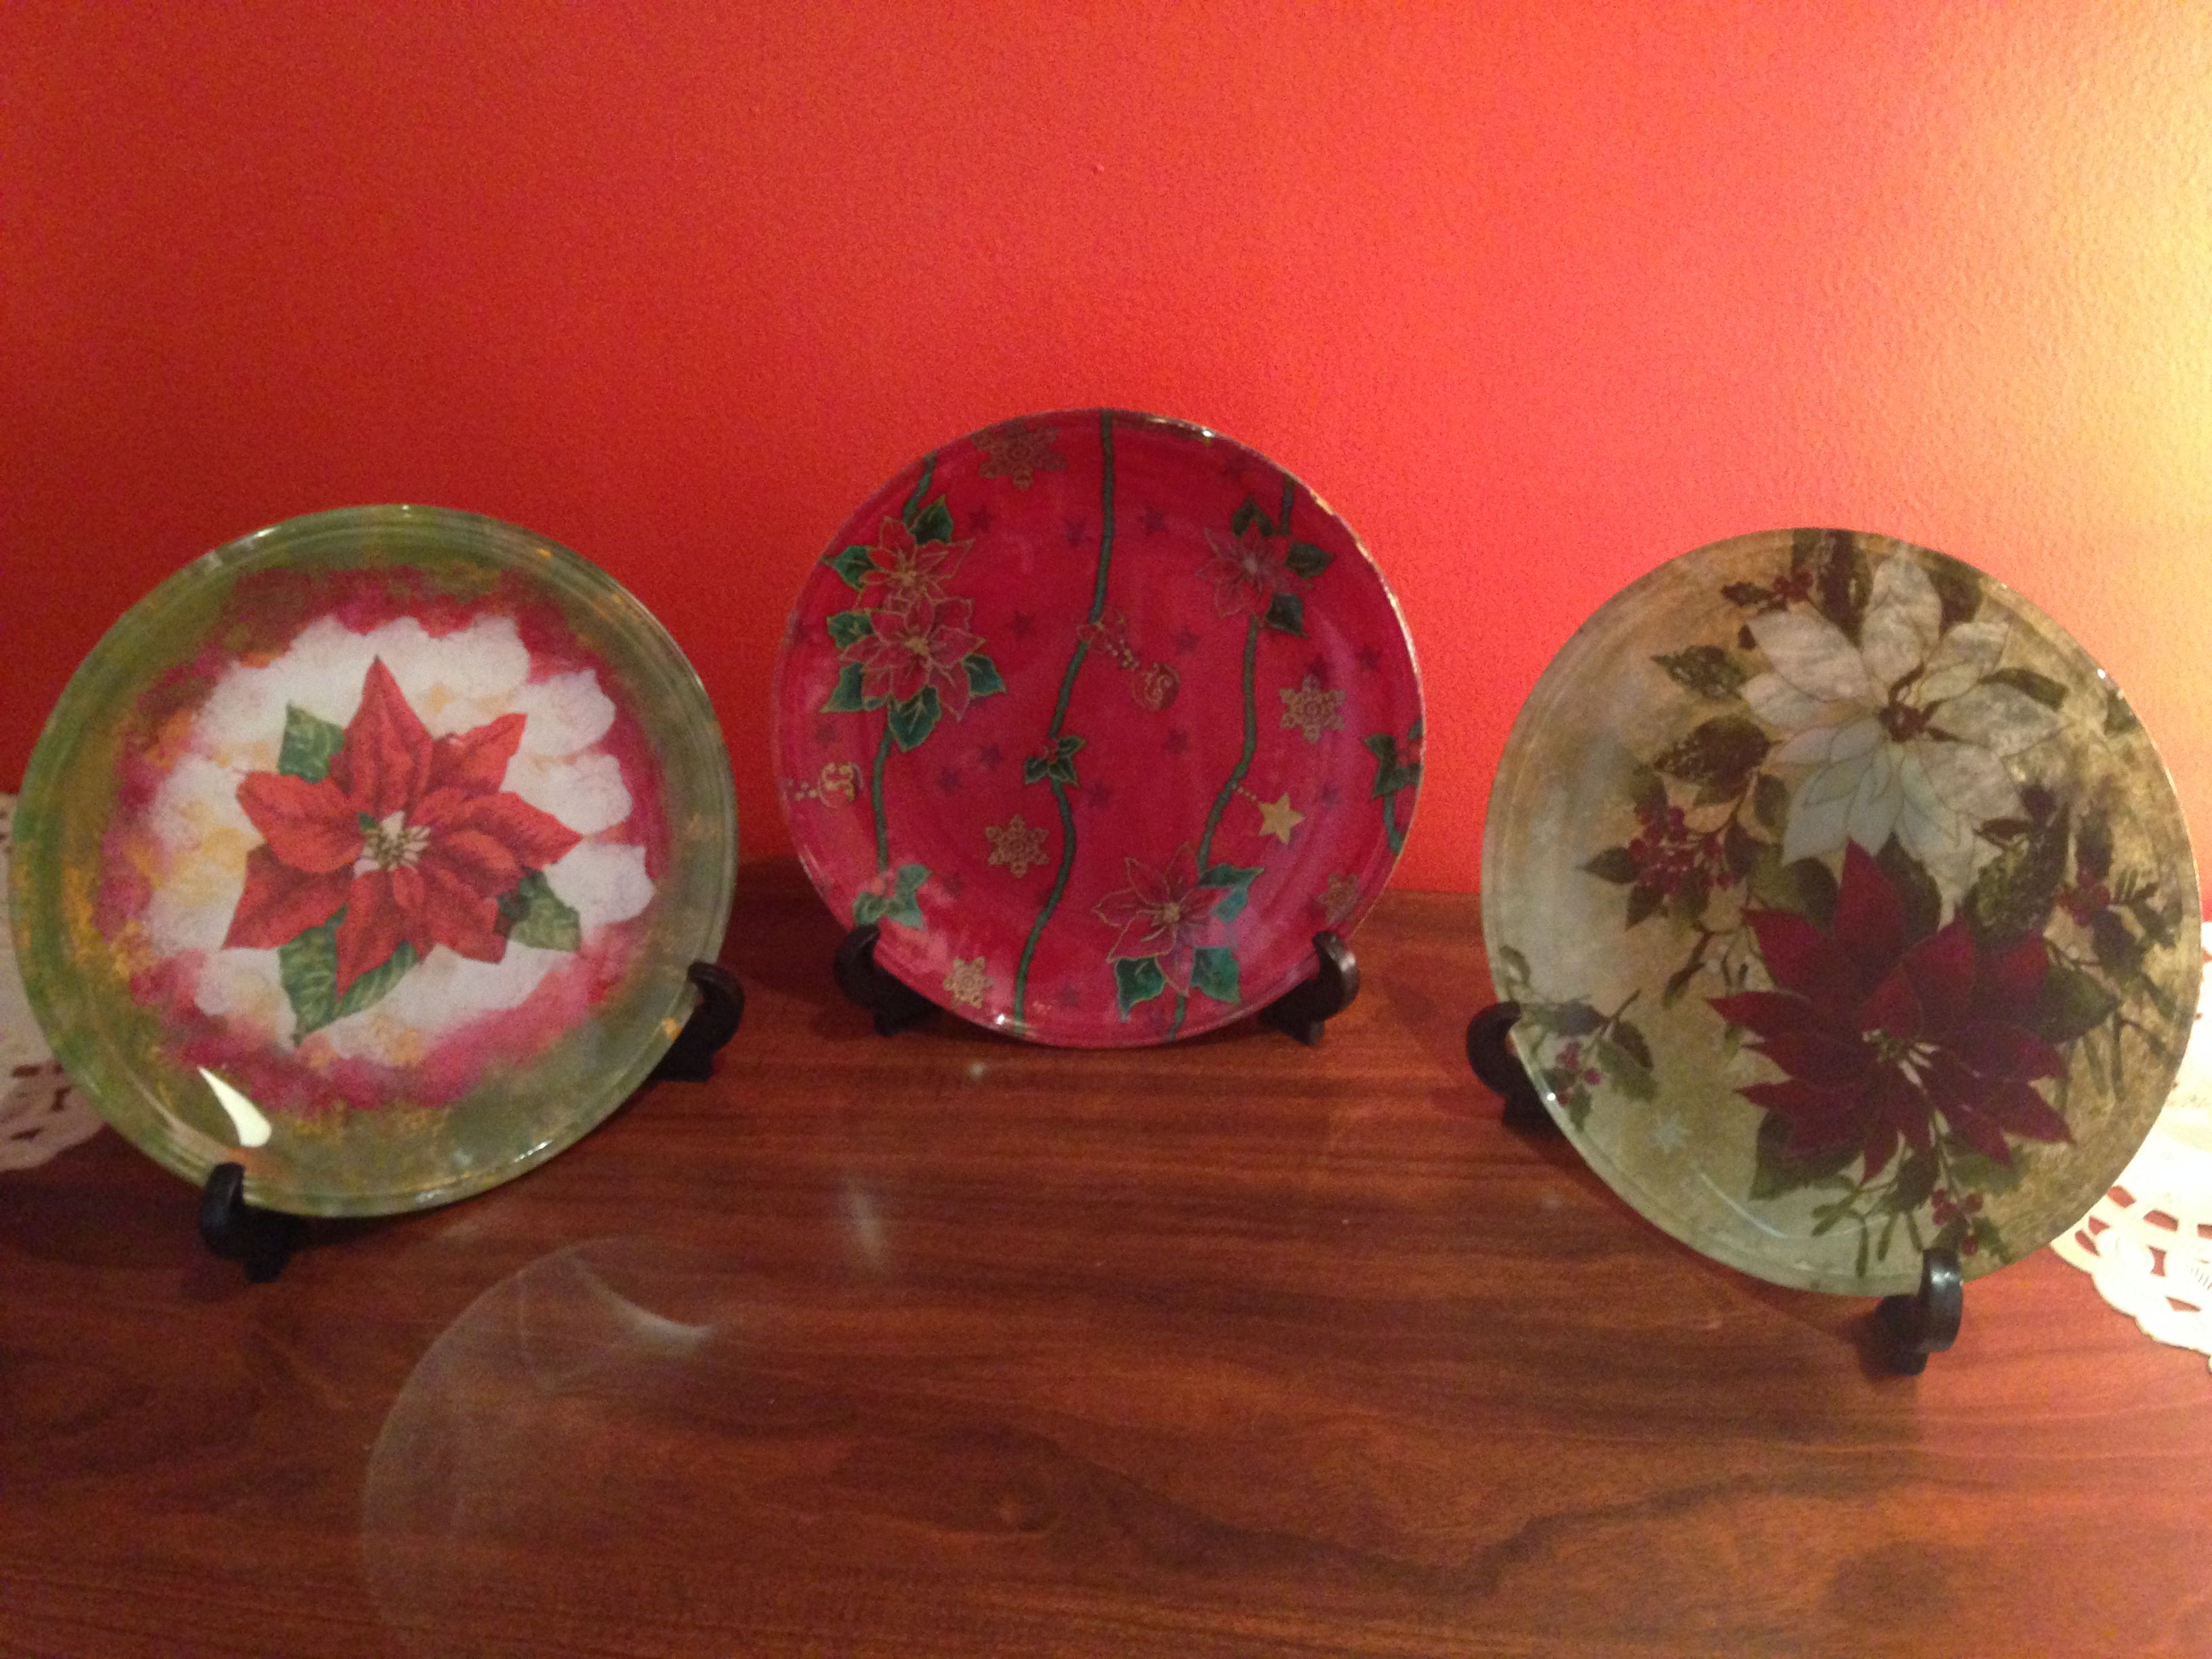 decopage plates with cloth and paper napkins